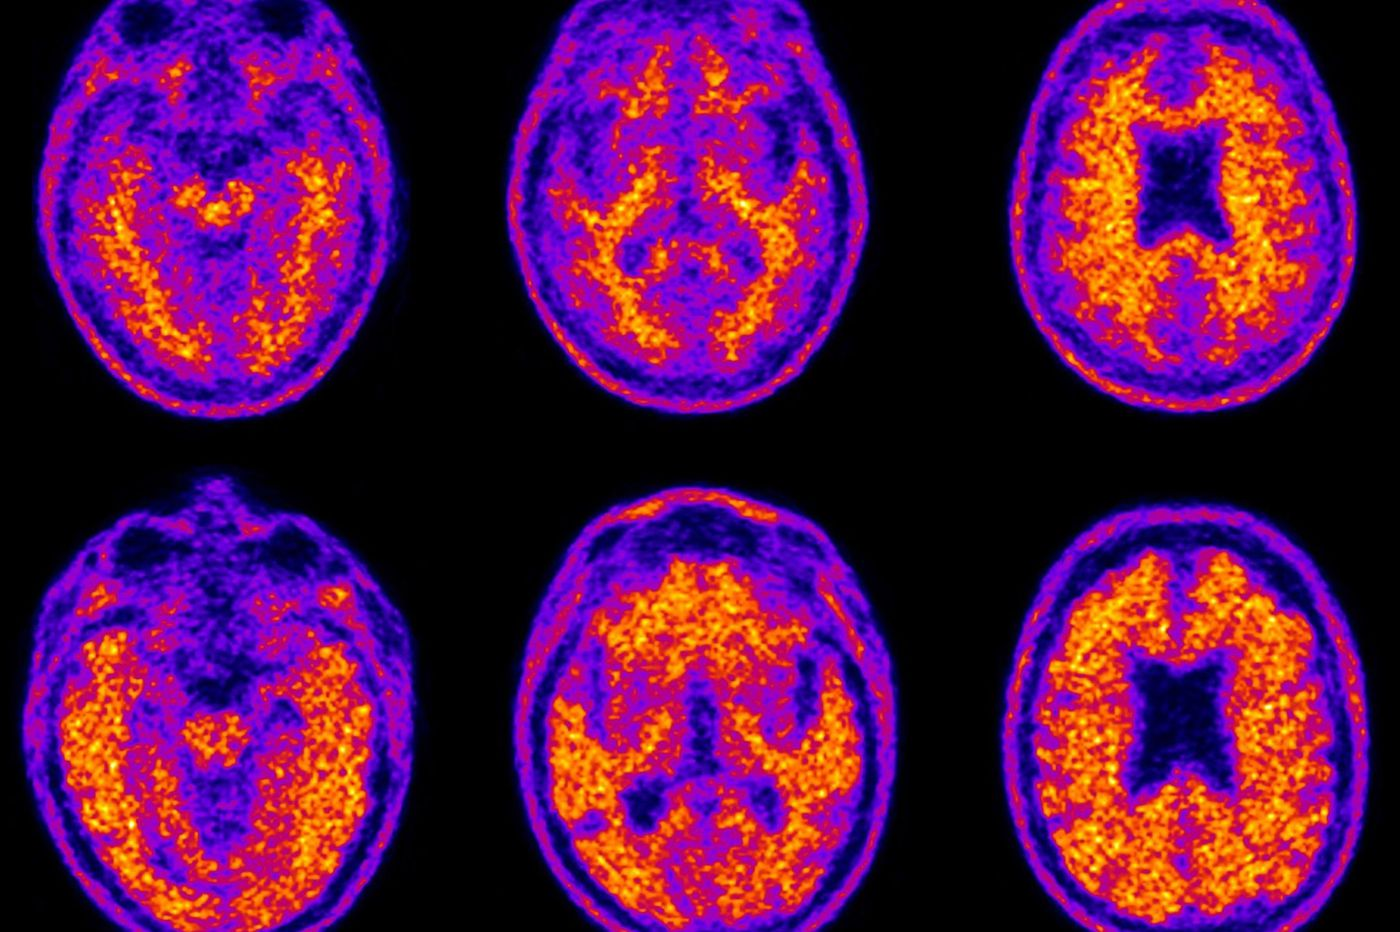 Financial problems may start earlier in dementia than many think, Duke study finds